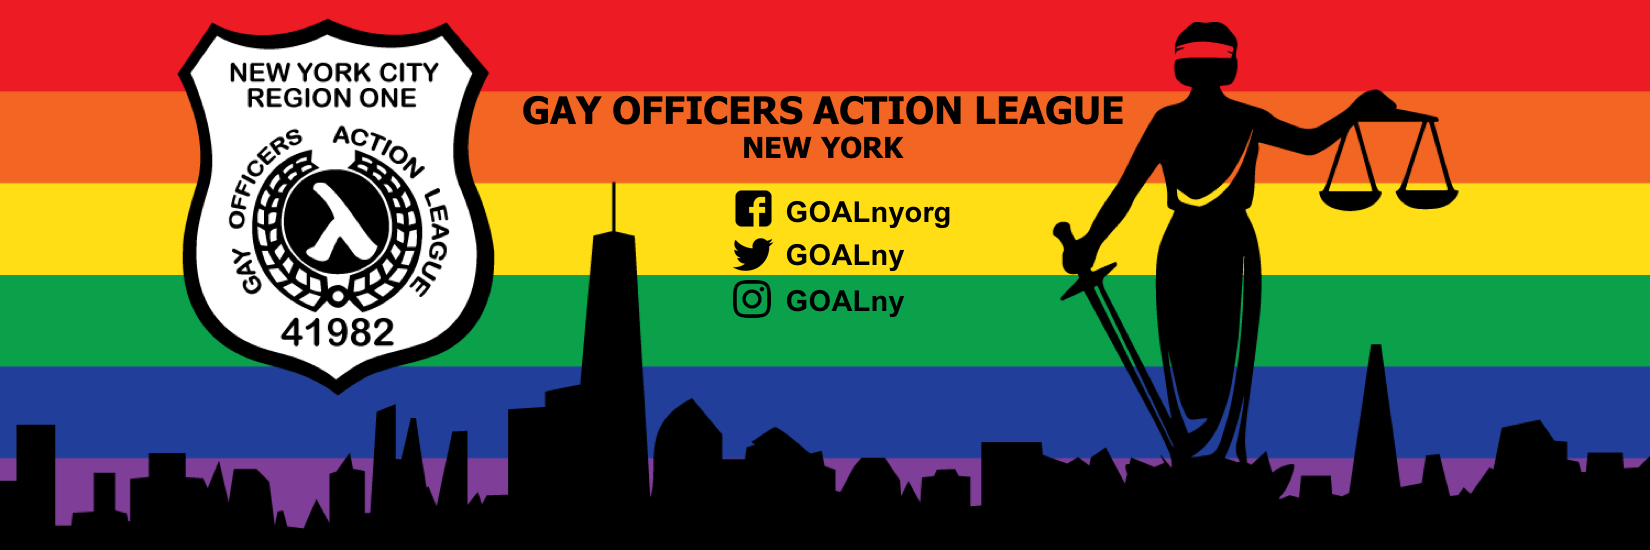 gay officers action league chicago